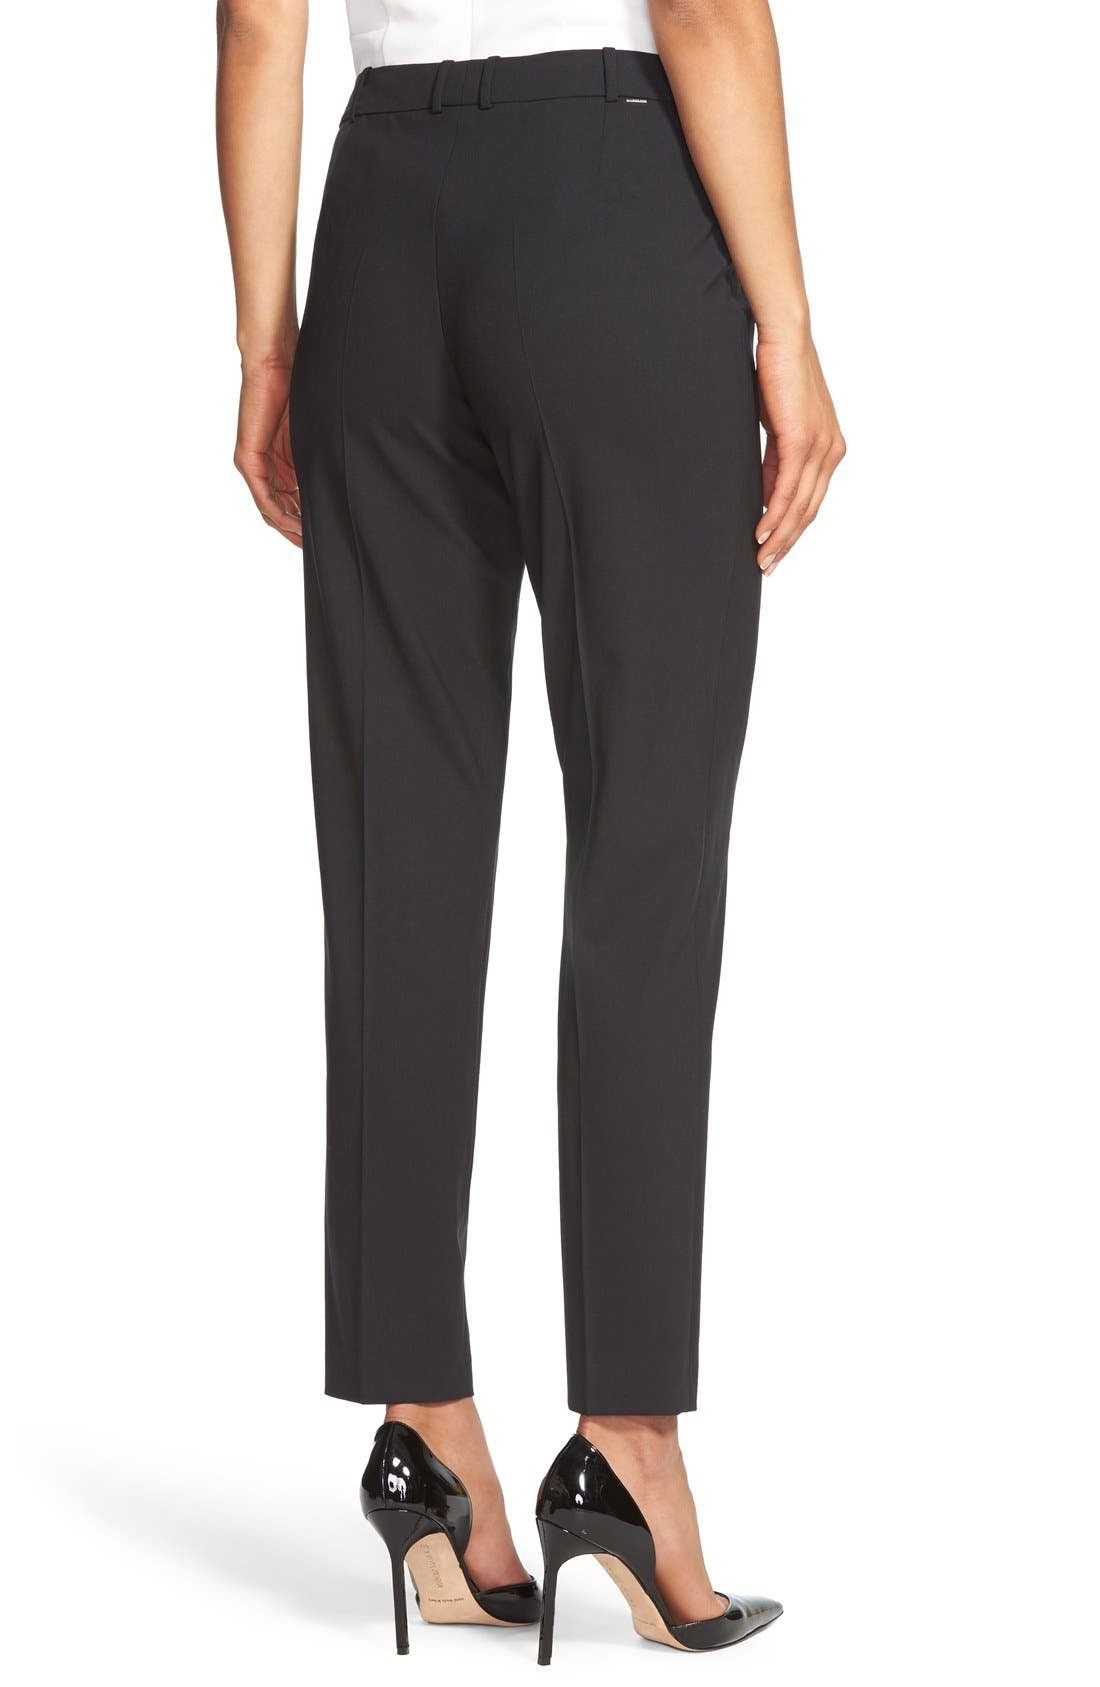 BOSS, Tiluna Tropical Stretch Wool Ankle Trousers, Alternate thumbnail 4, color, BLACK